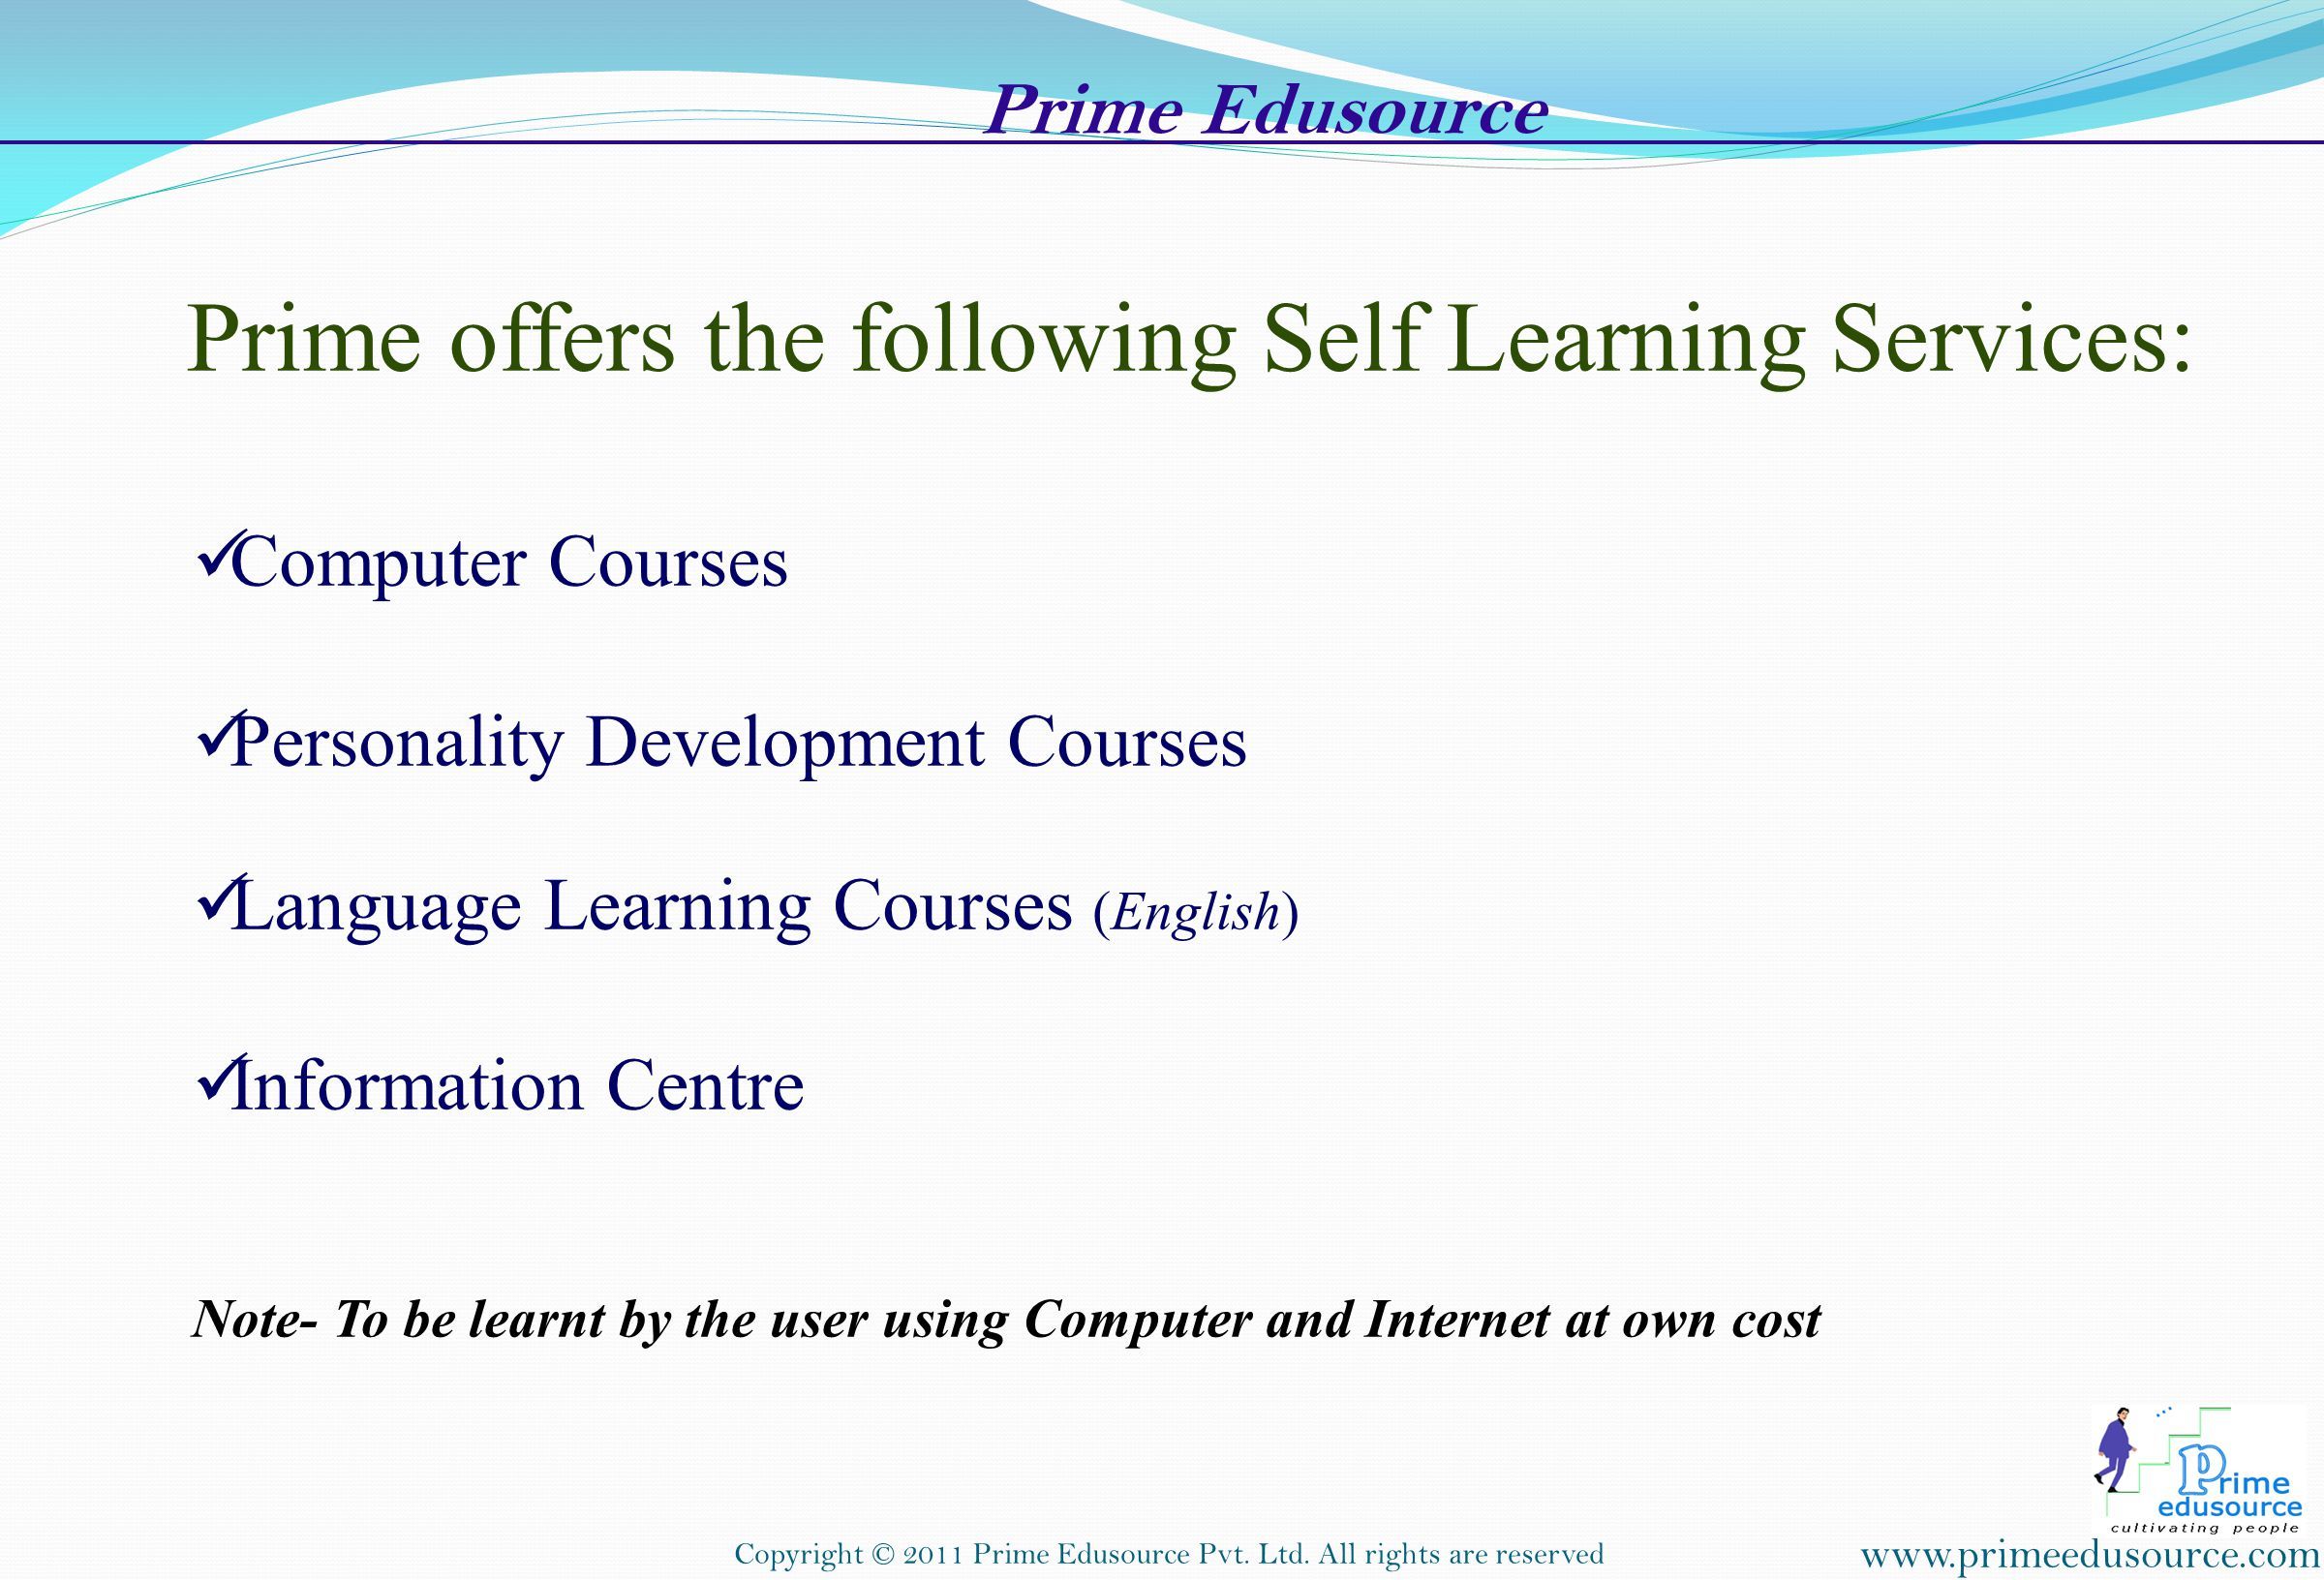 Prime offers the following Self Learning Services: